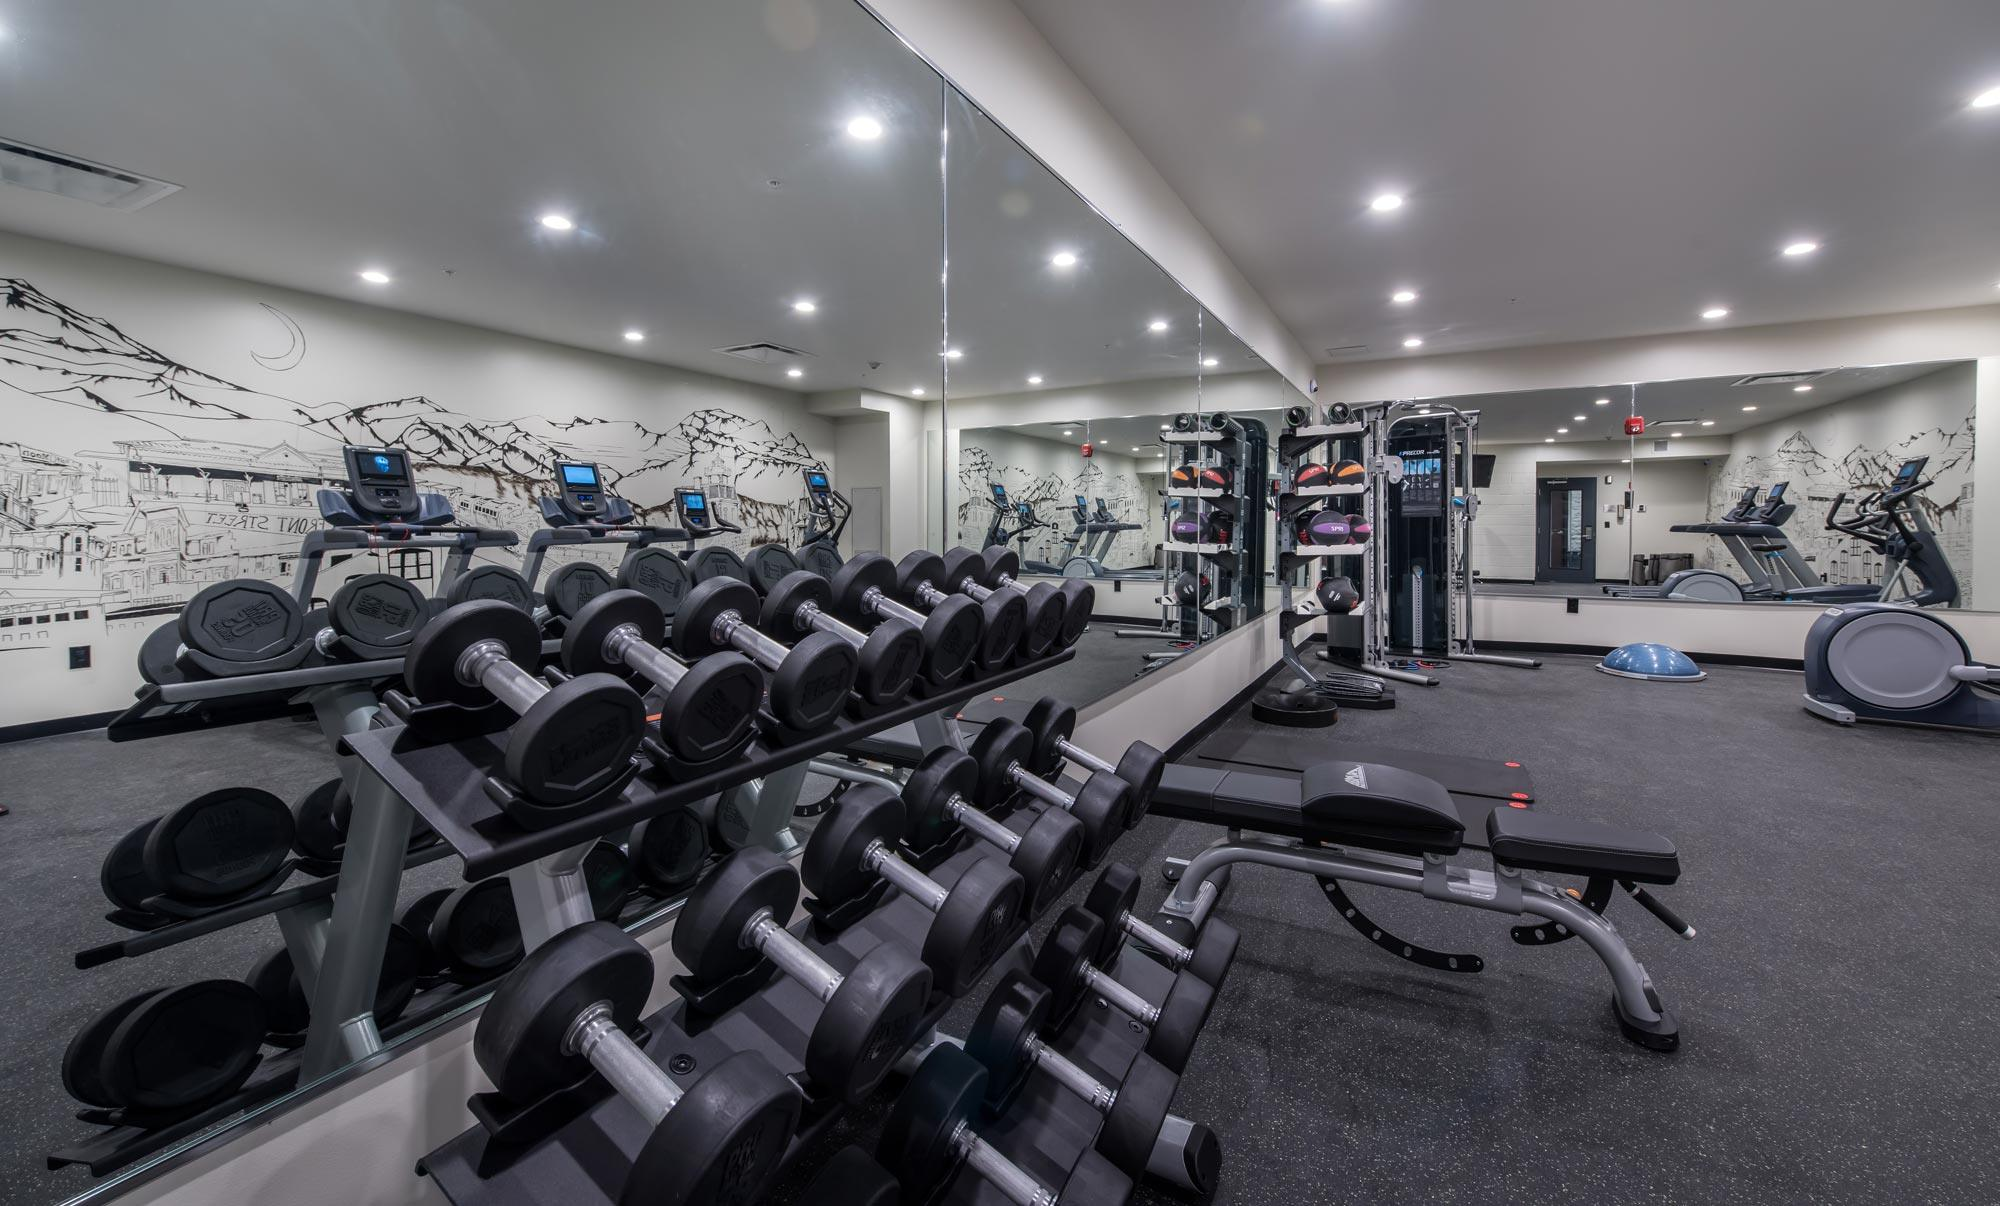 weight rack sitting against mirrored wall of modern fitness center